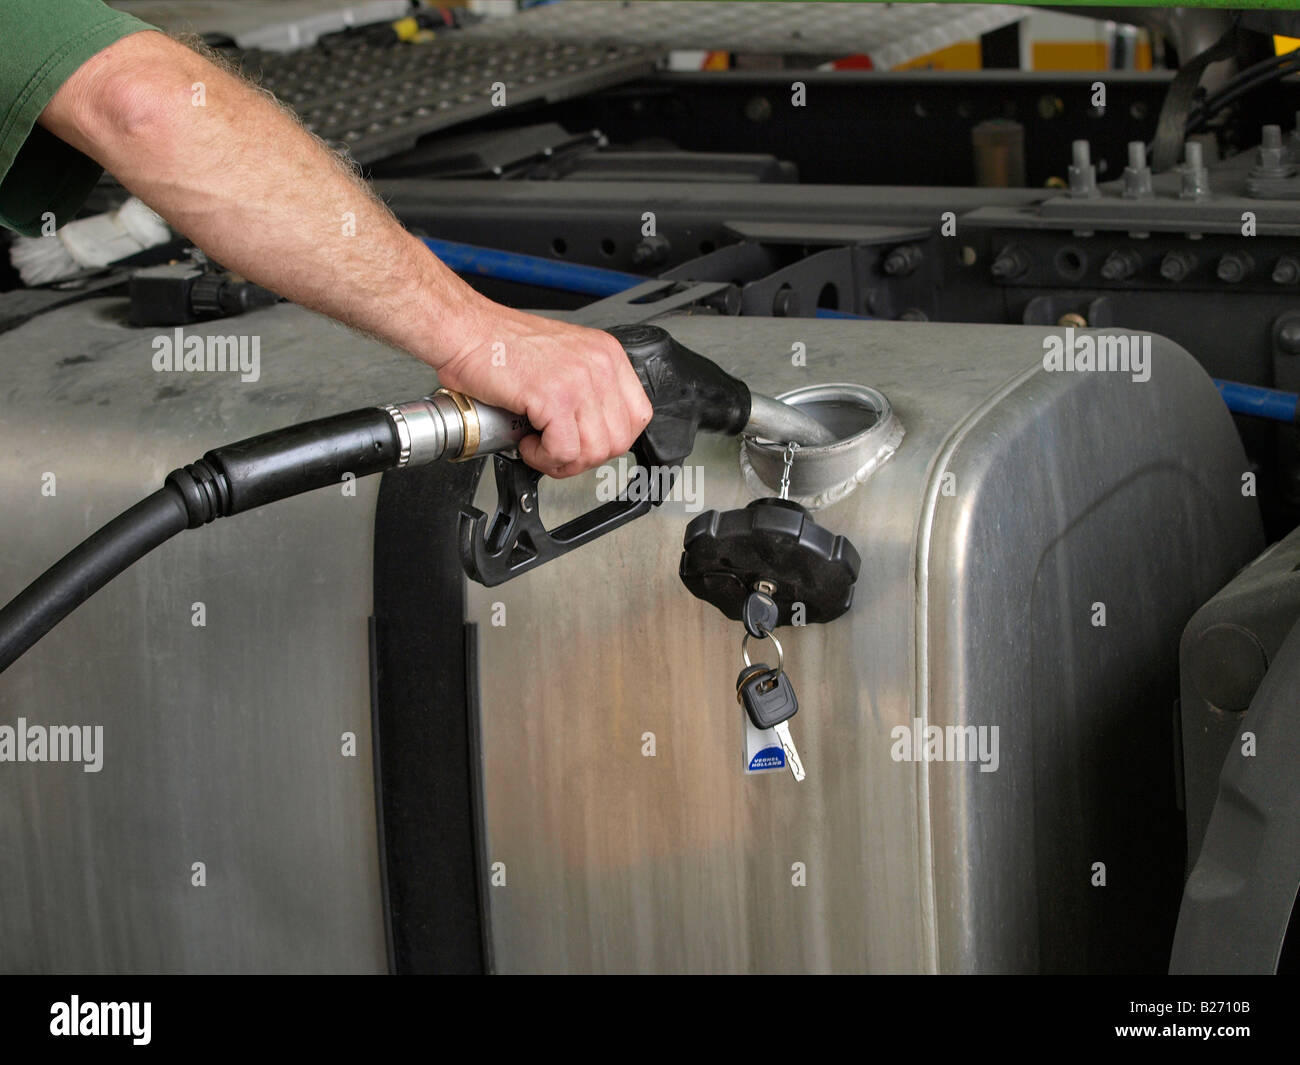 fuel tank truck stockfotos fuel tank truck bilder alamy. Black Bedroom Furniture Sets. Home Design Ideas